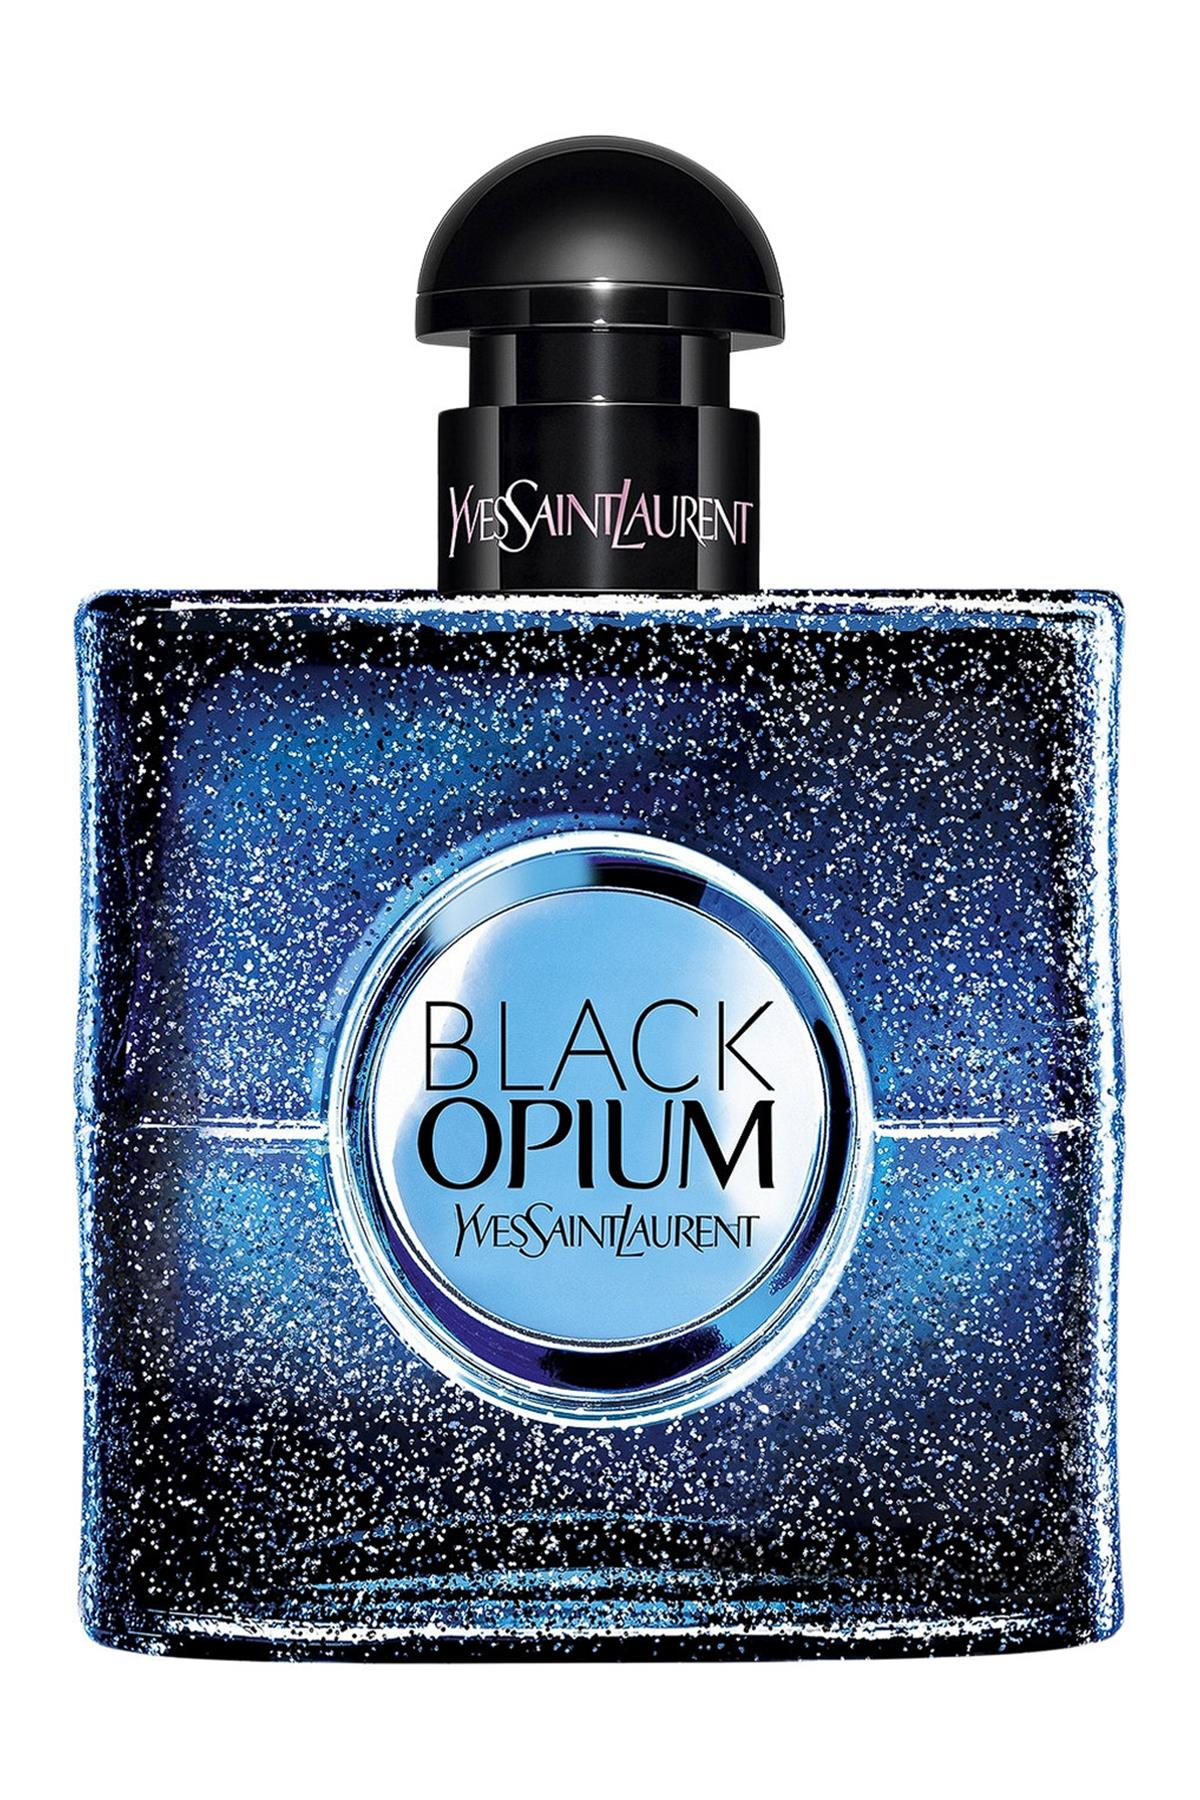 Yves Saint Laurent Black Opium Intense EDP 50 ml Kadın Parfüm